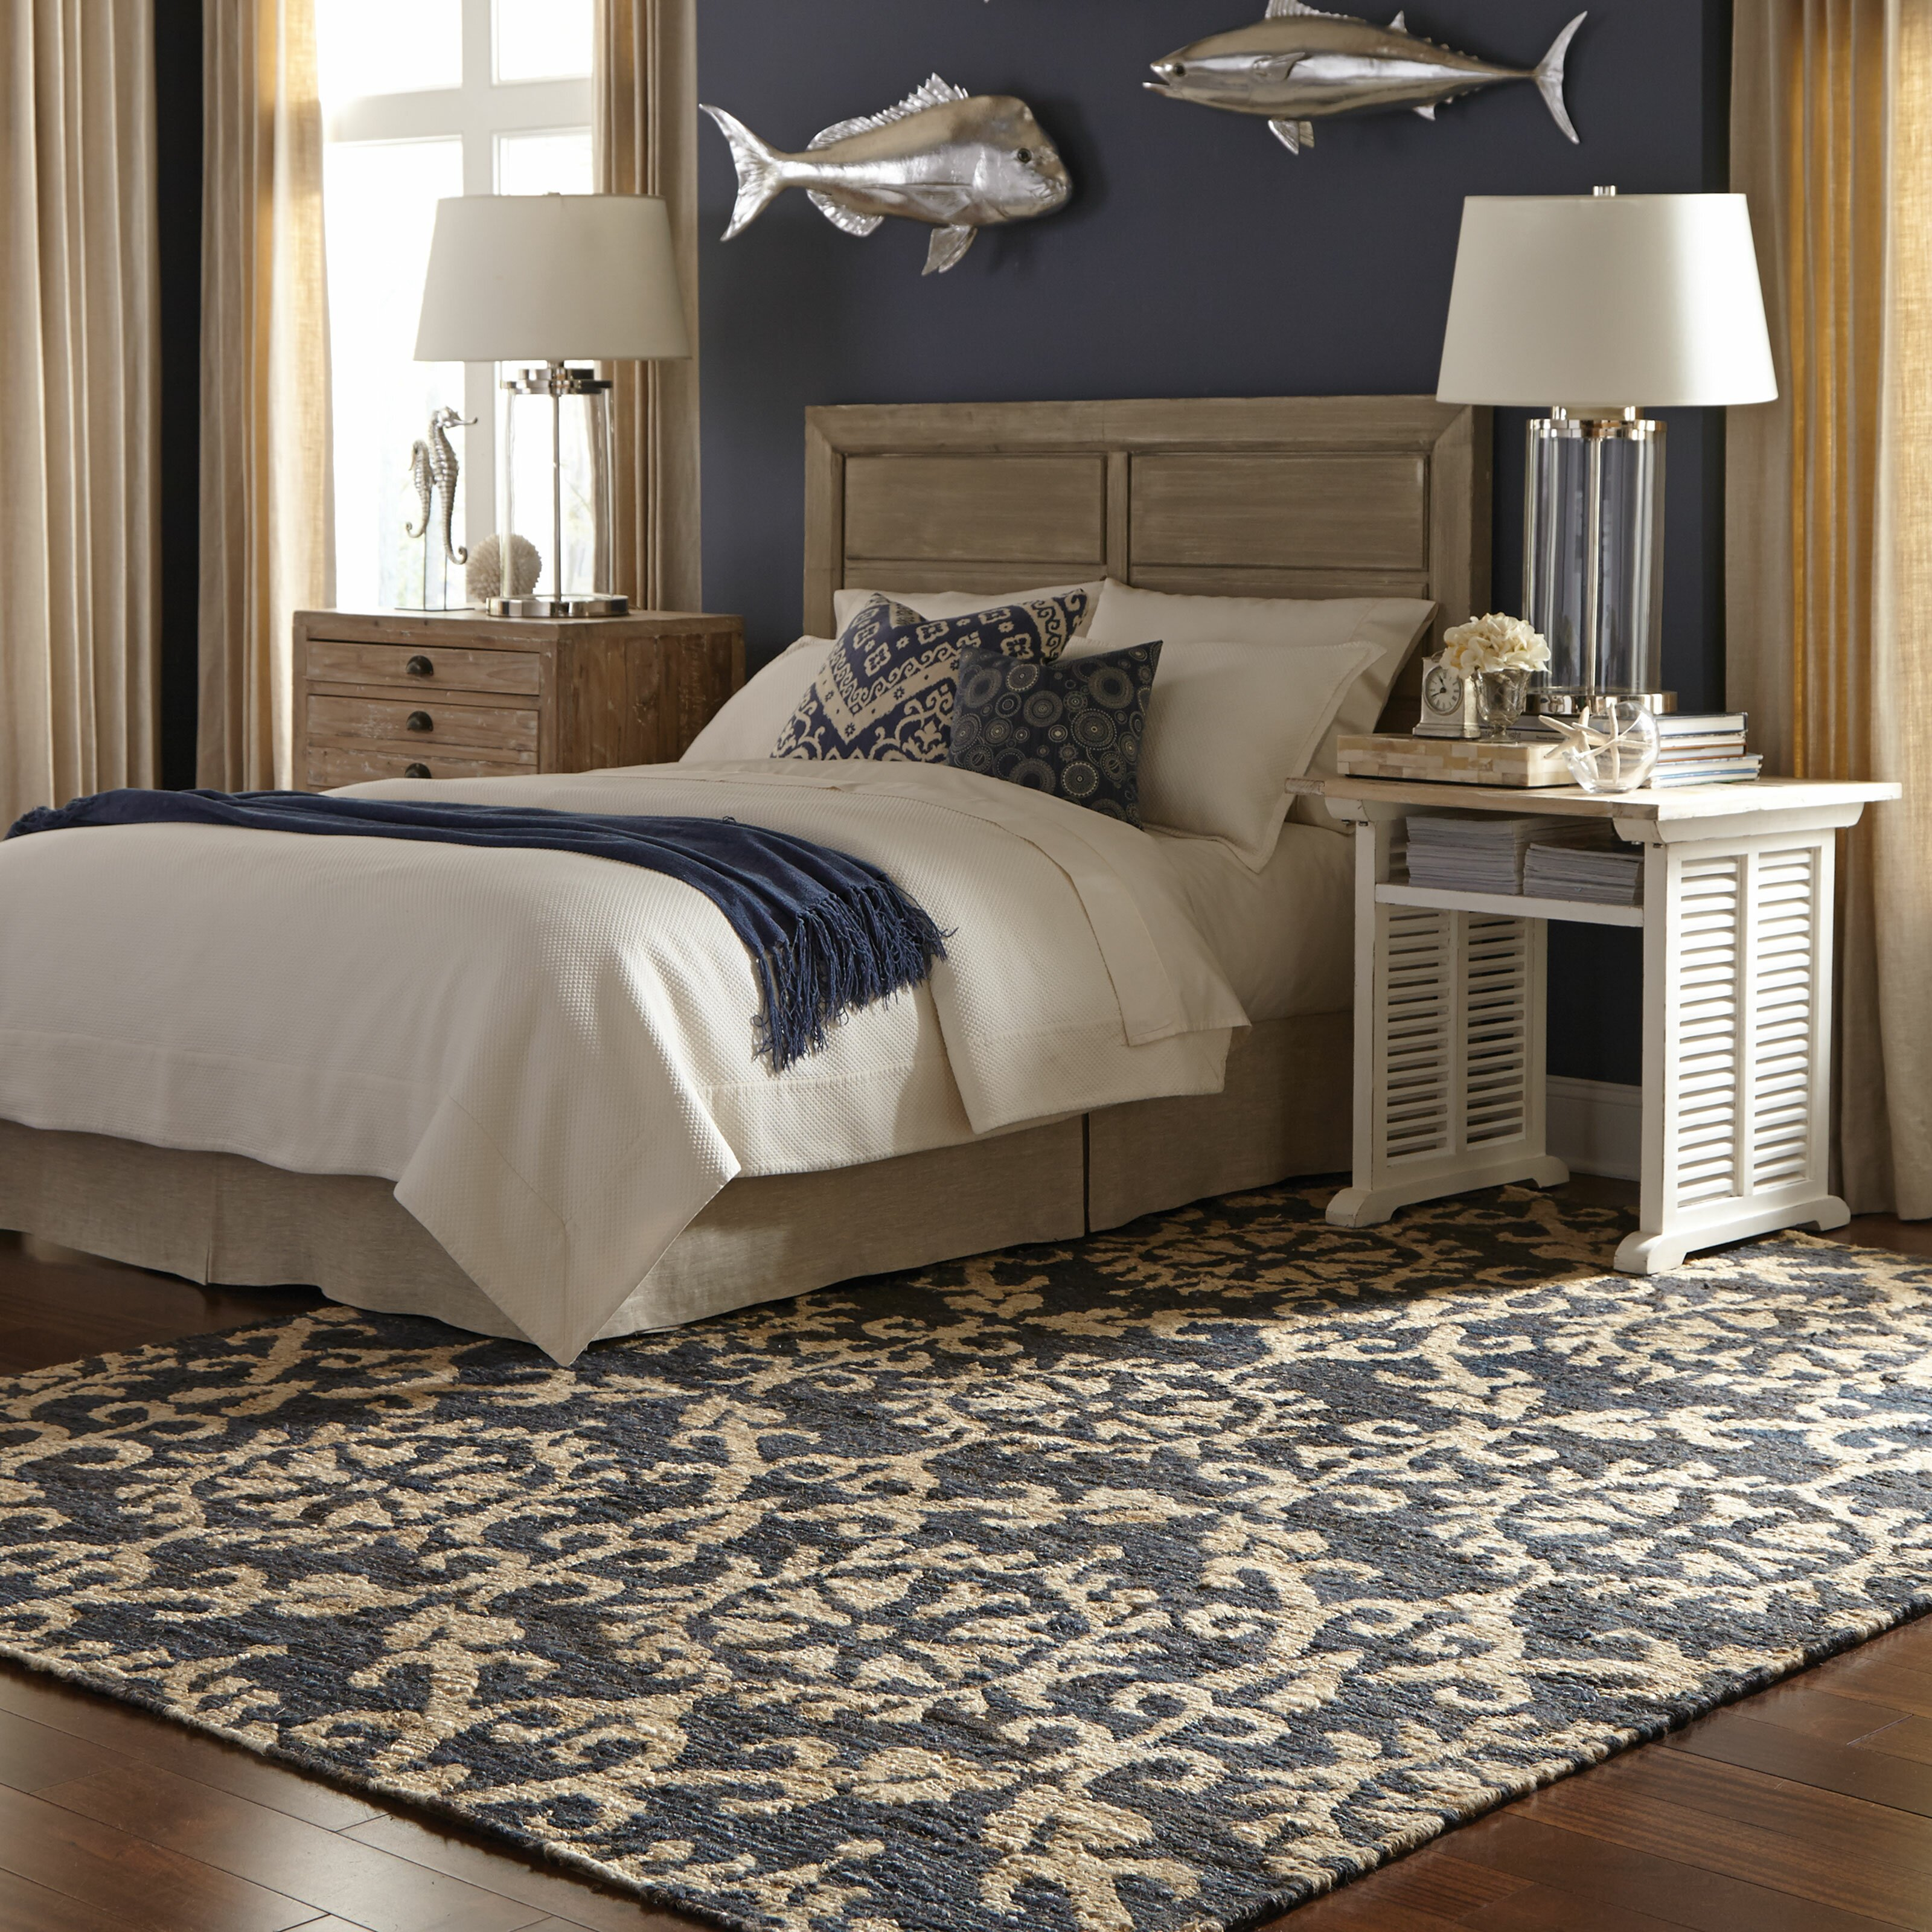 Attractive Tommy Bahama Furniture Closeouts #4: Tommy Bahama Furniture Closeouts